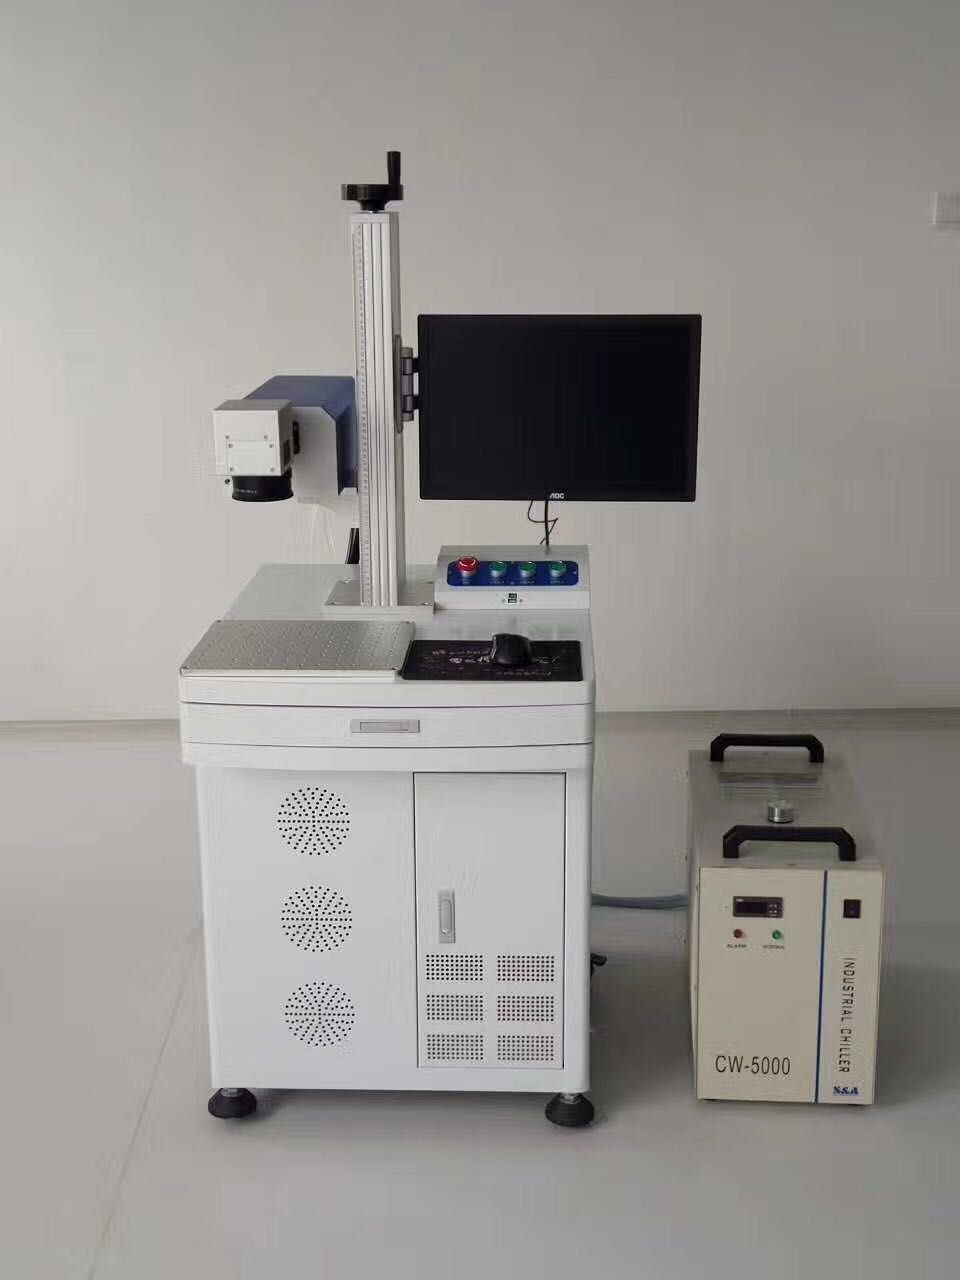 Our New Equipment - Laser marking machine